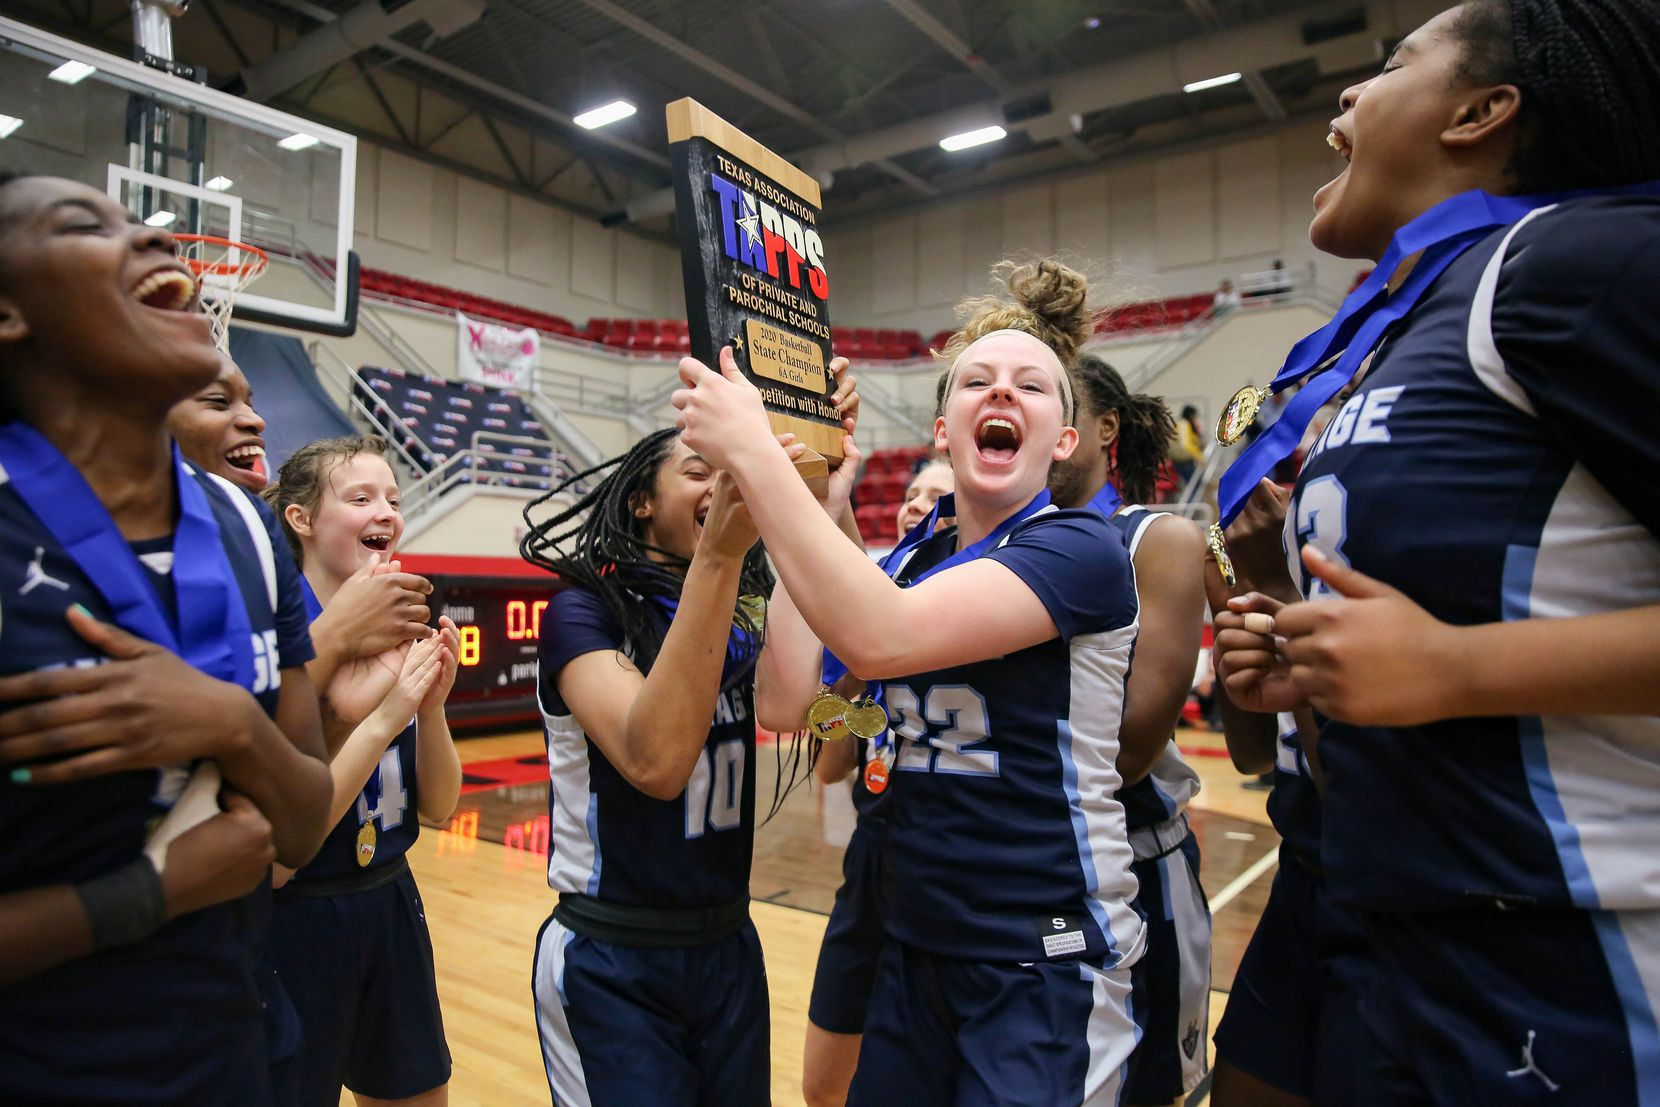 Players from the Village School celebrate after beating Plano Prestonwood Christian during a TAPPS Class 6A girls basketball state championship game on Feb. 28, 2020 in West. Prestonwood lost 75-48.